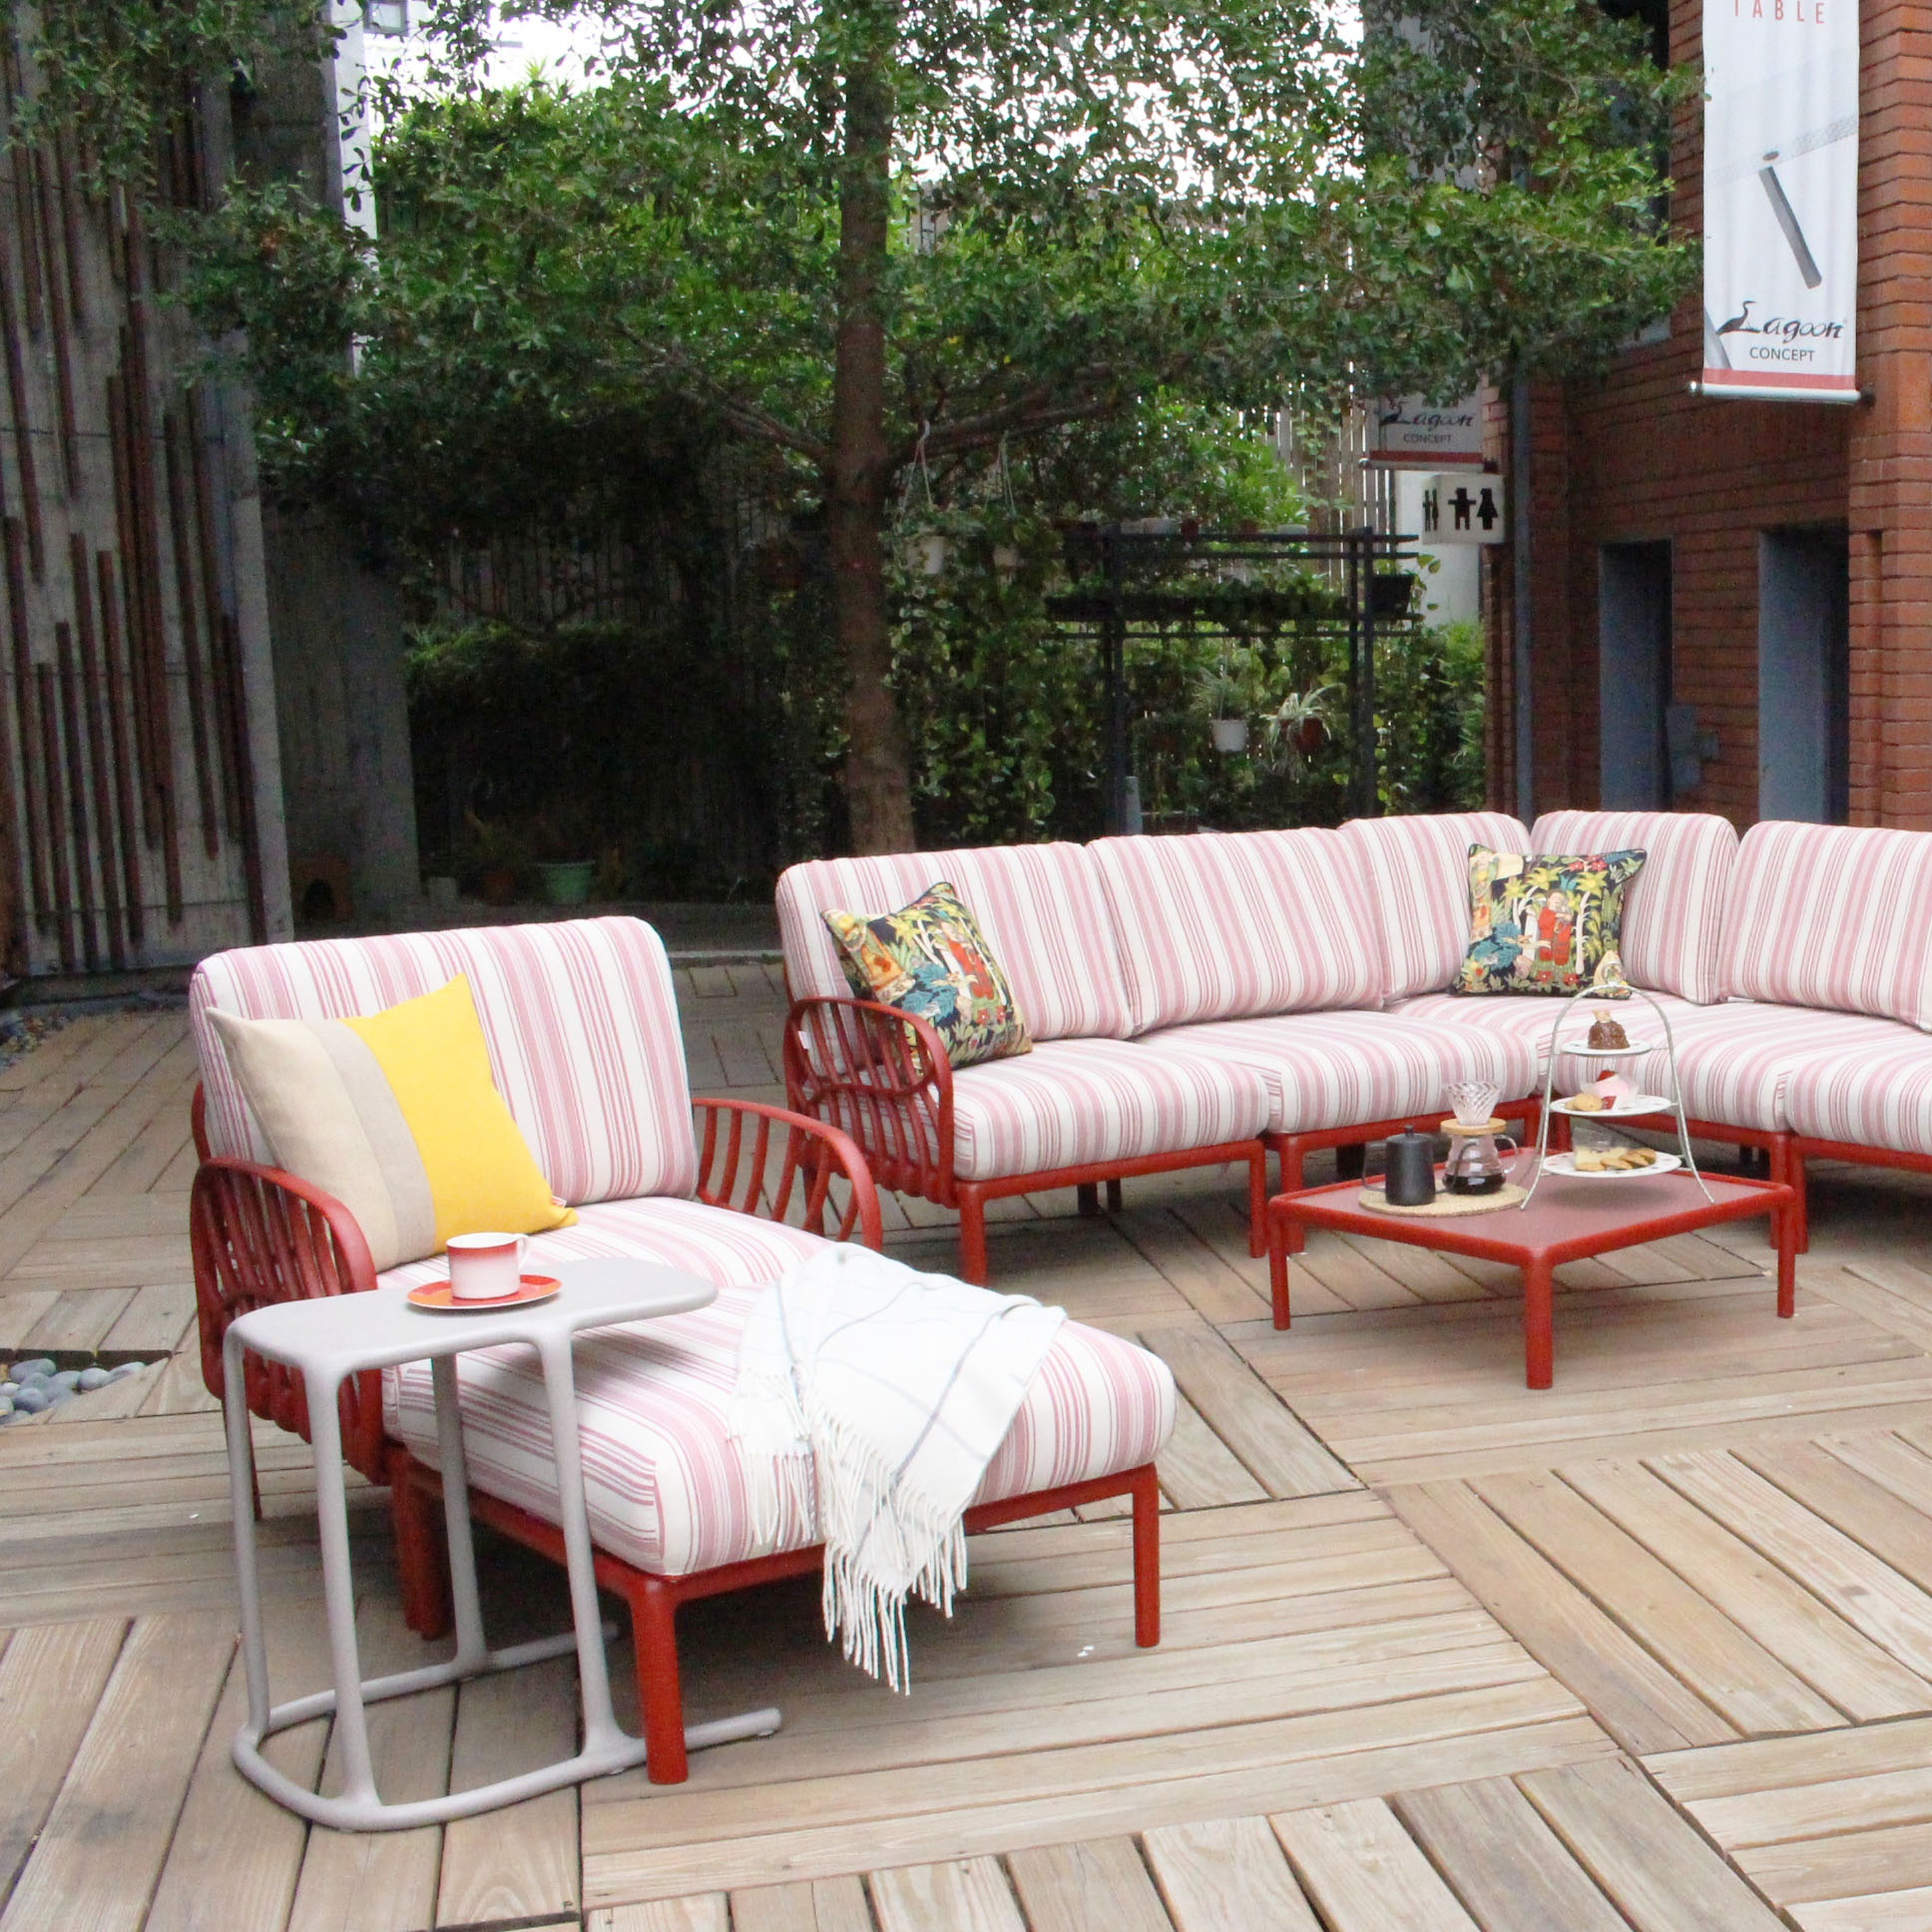 Lagoon Patio sofa set and chaise lounges